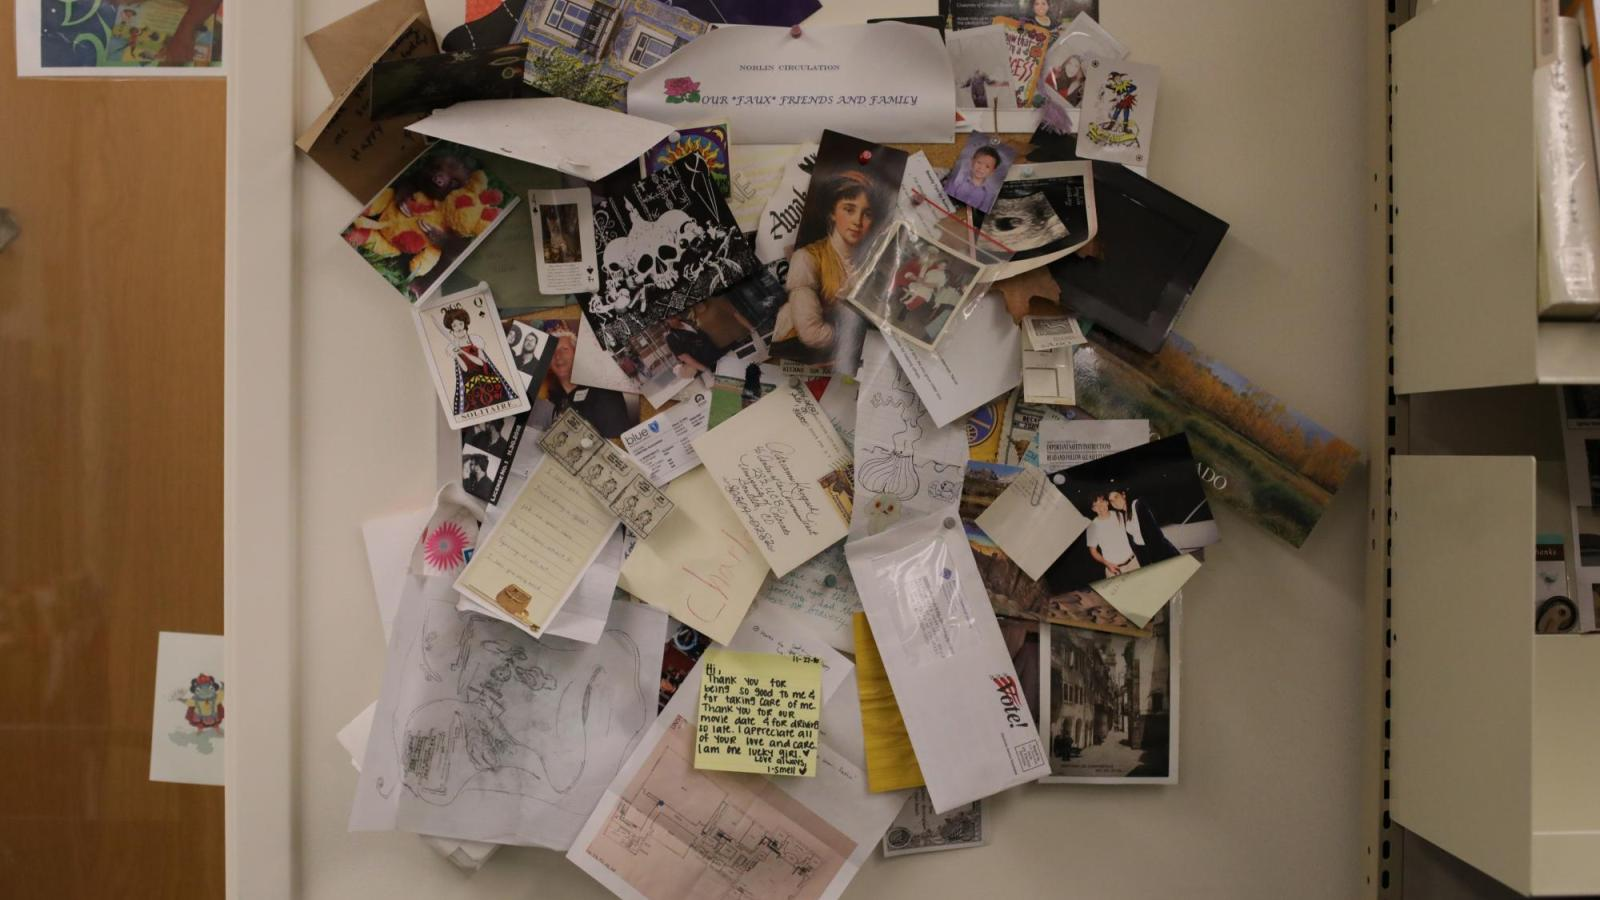 There is an entire bulletin board dedicated to objects found in library materials.